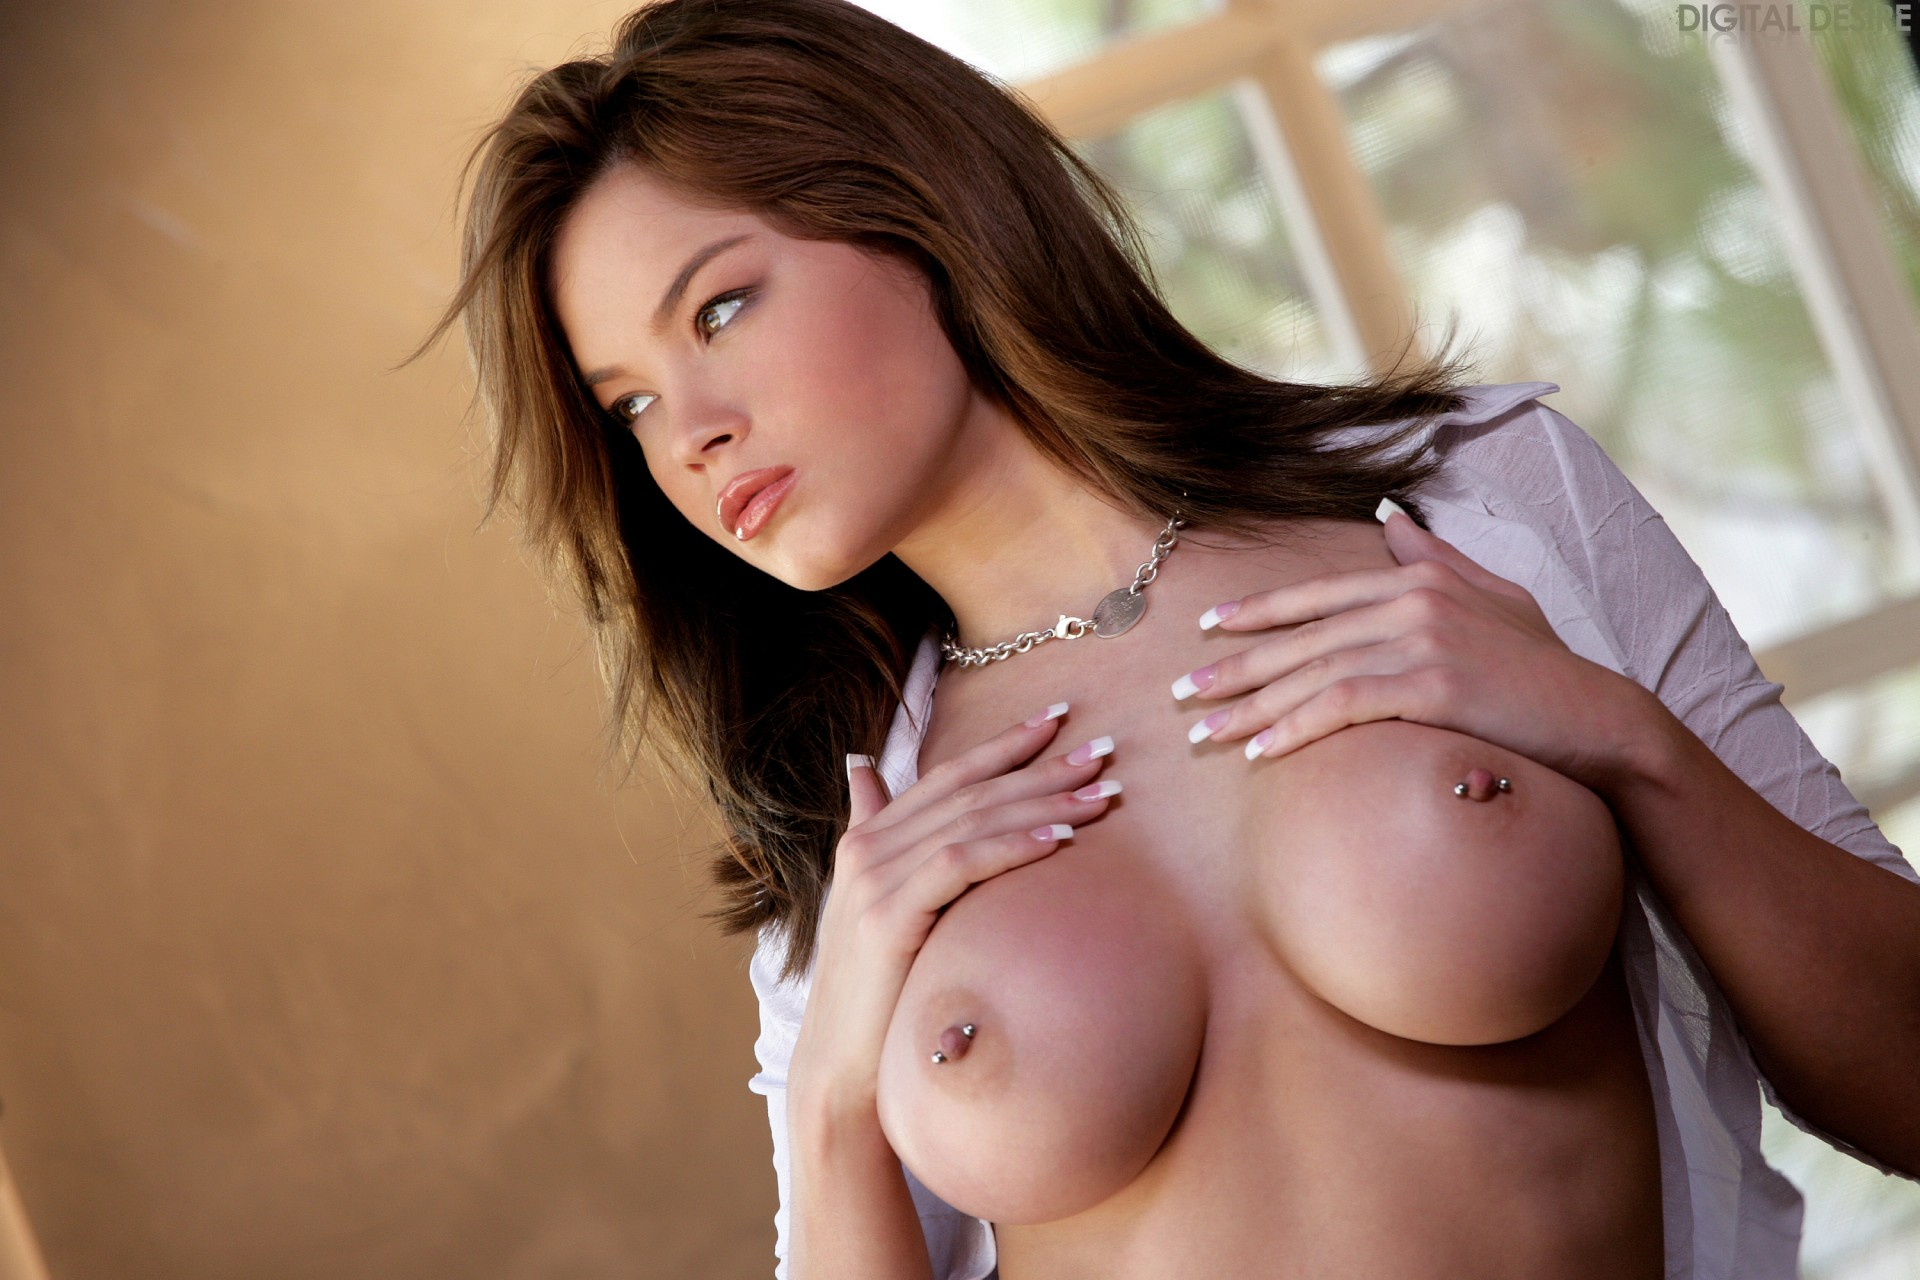 boobs-in-nude-suck-cokc-black